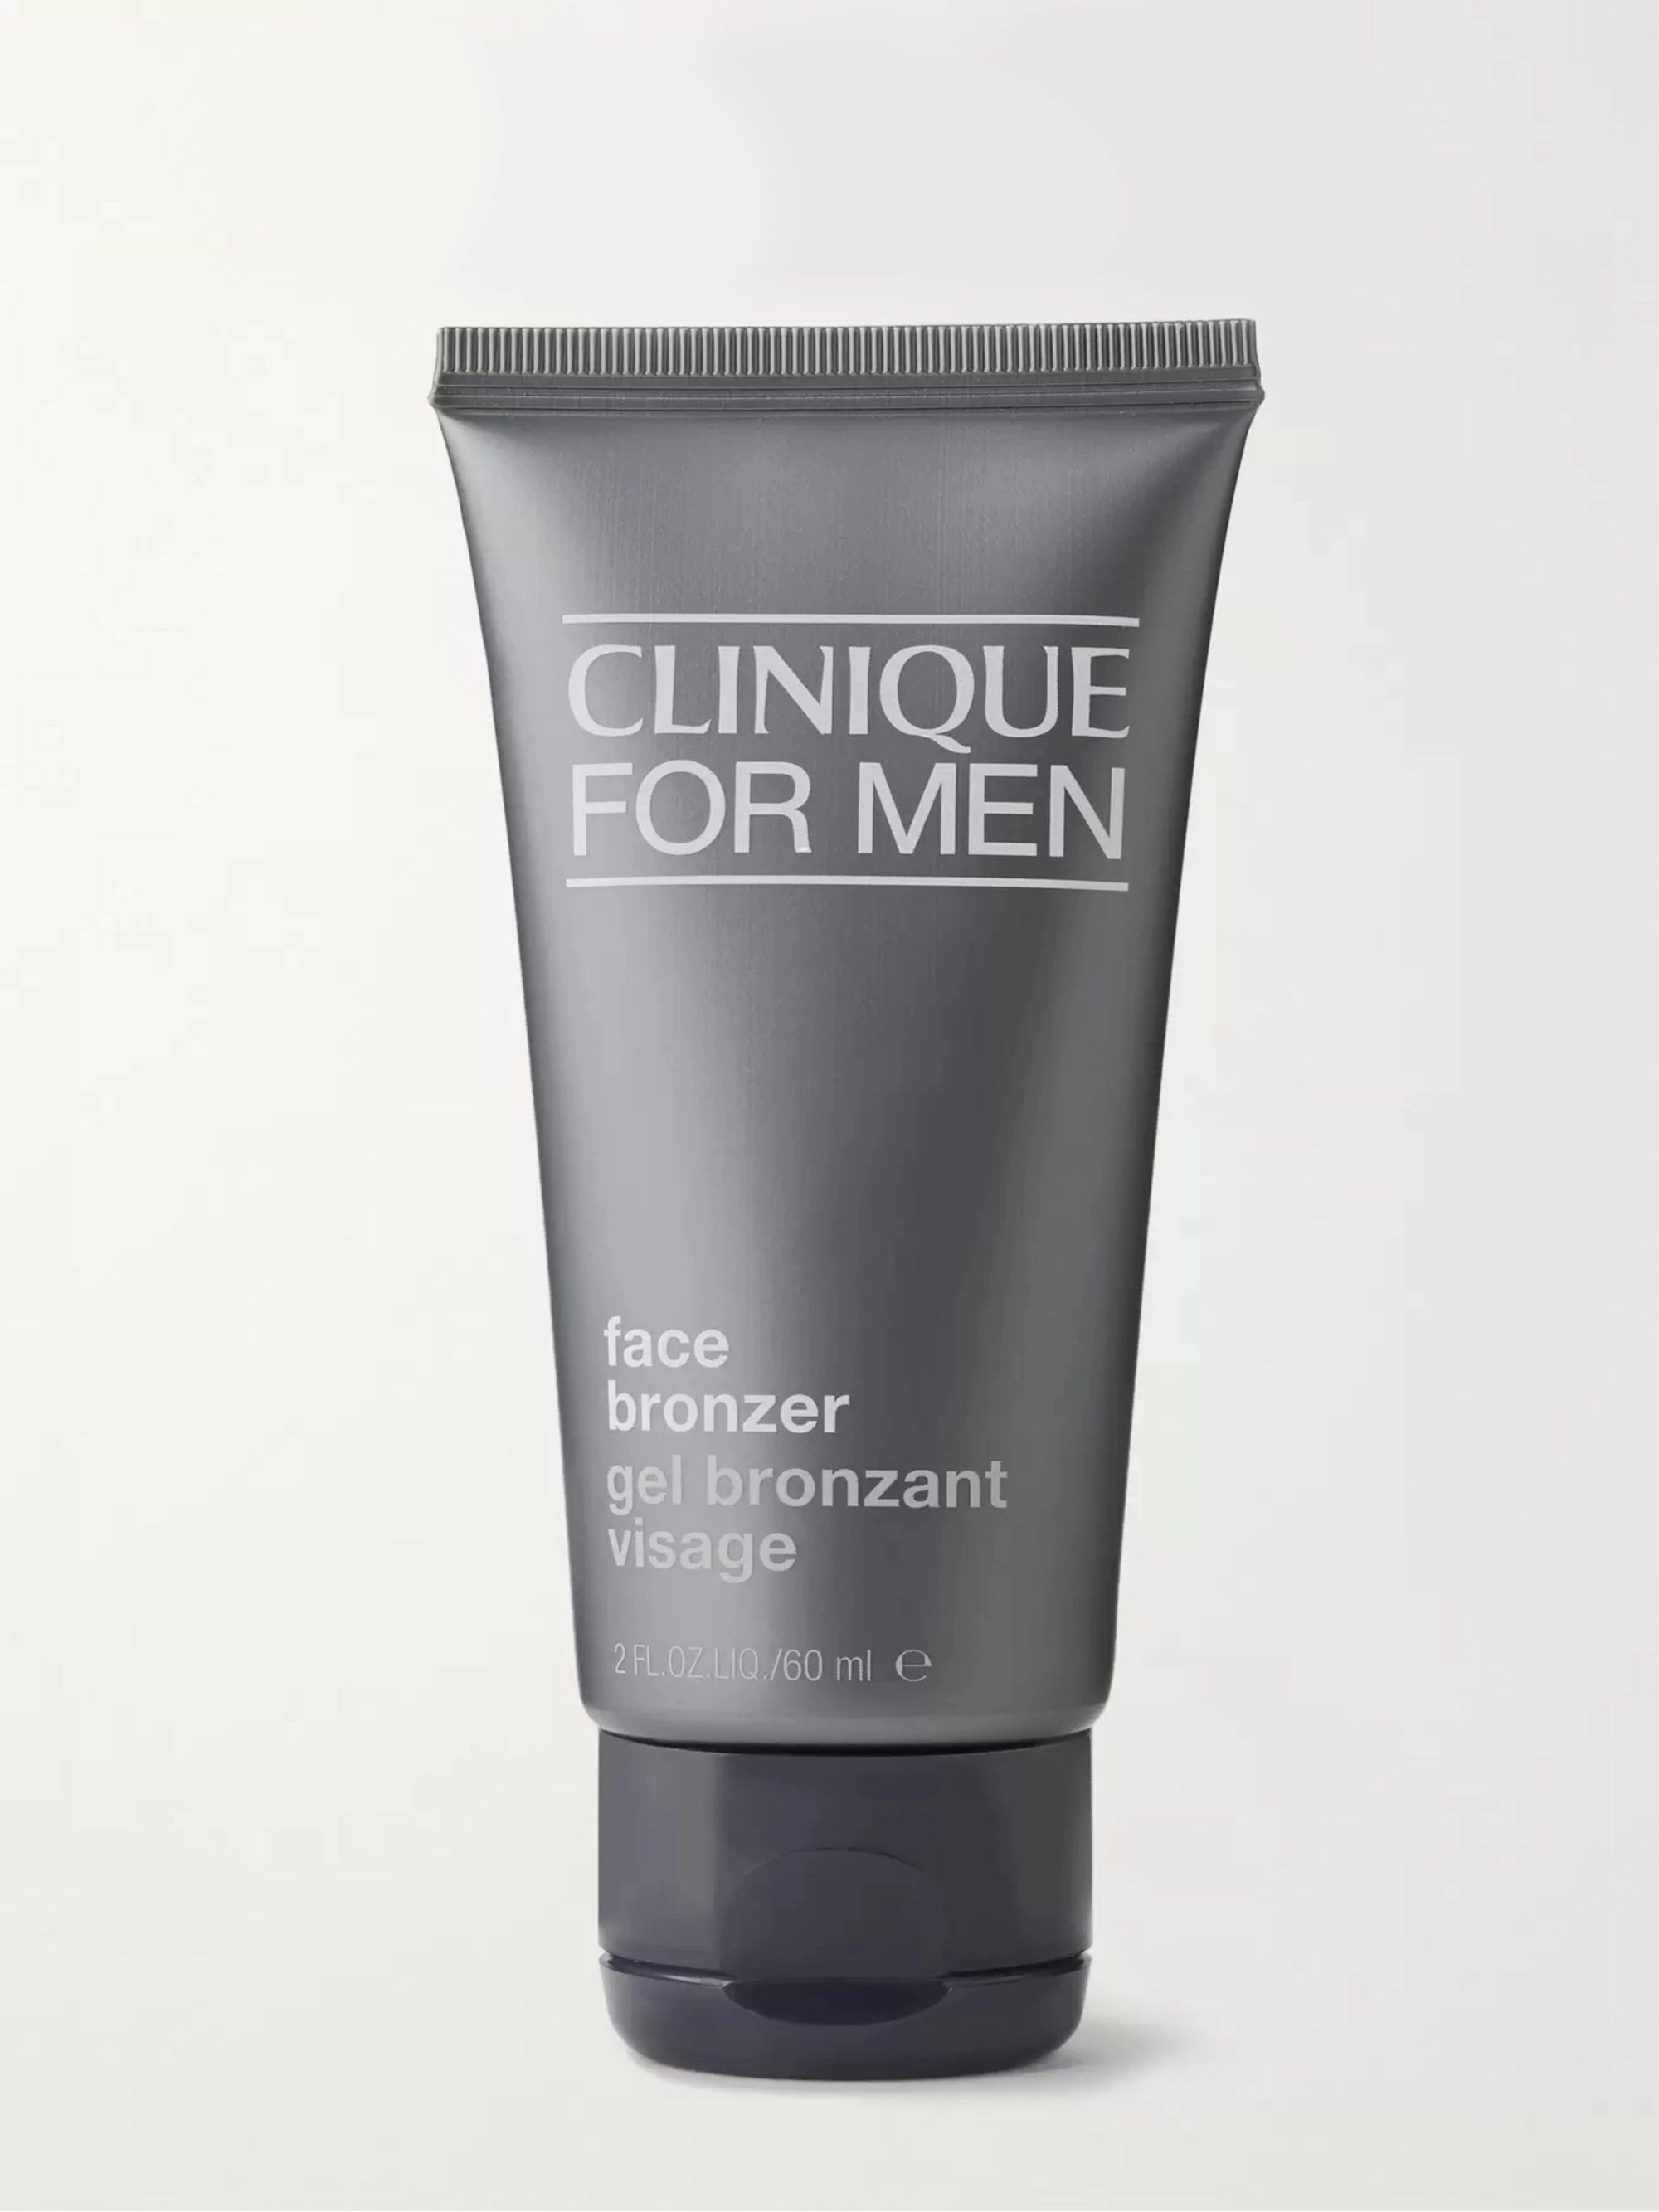 Clinique For Men Face Bronzer, 60ml